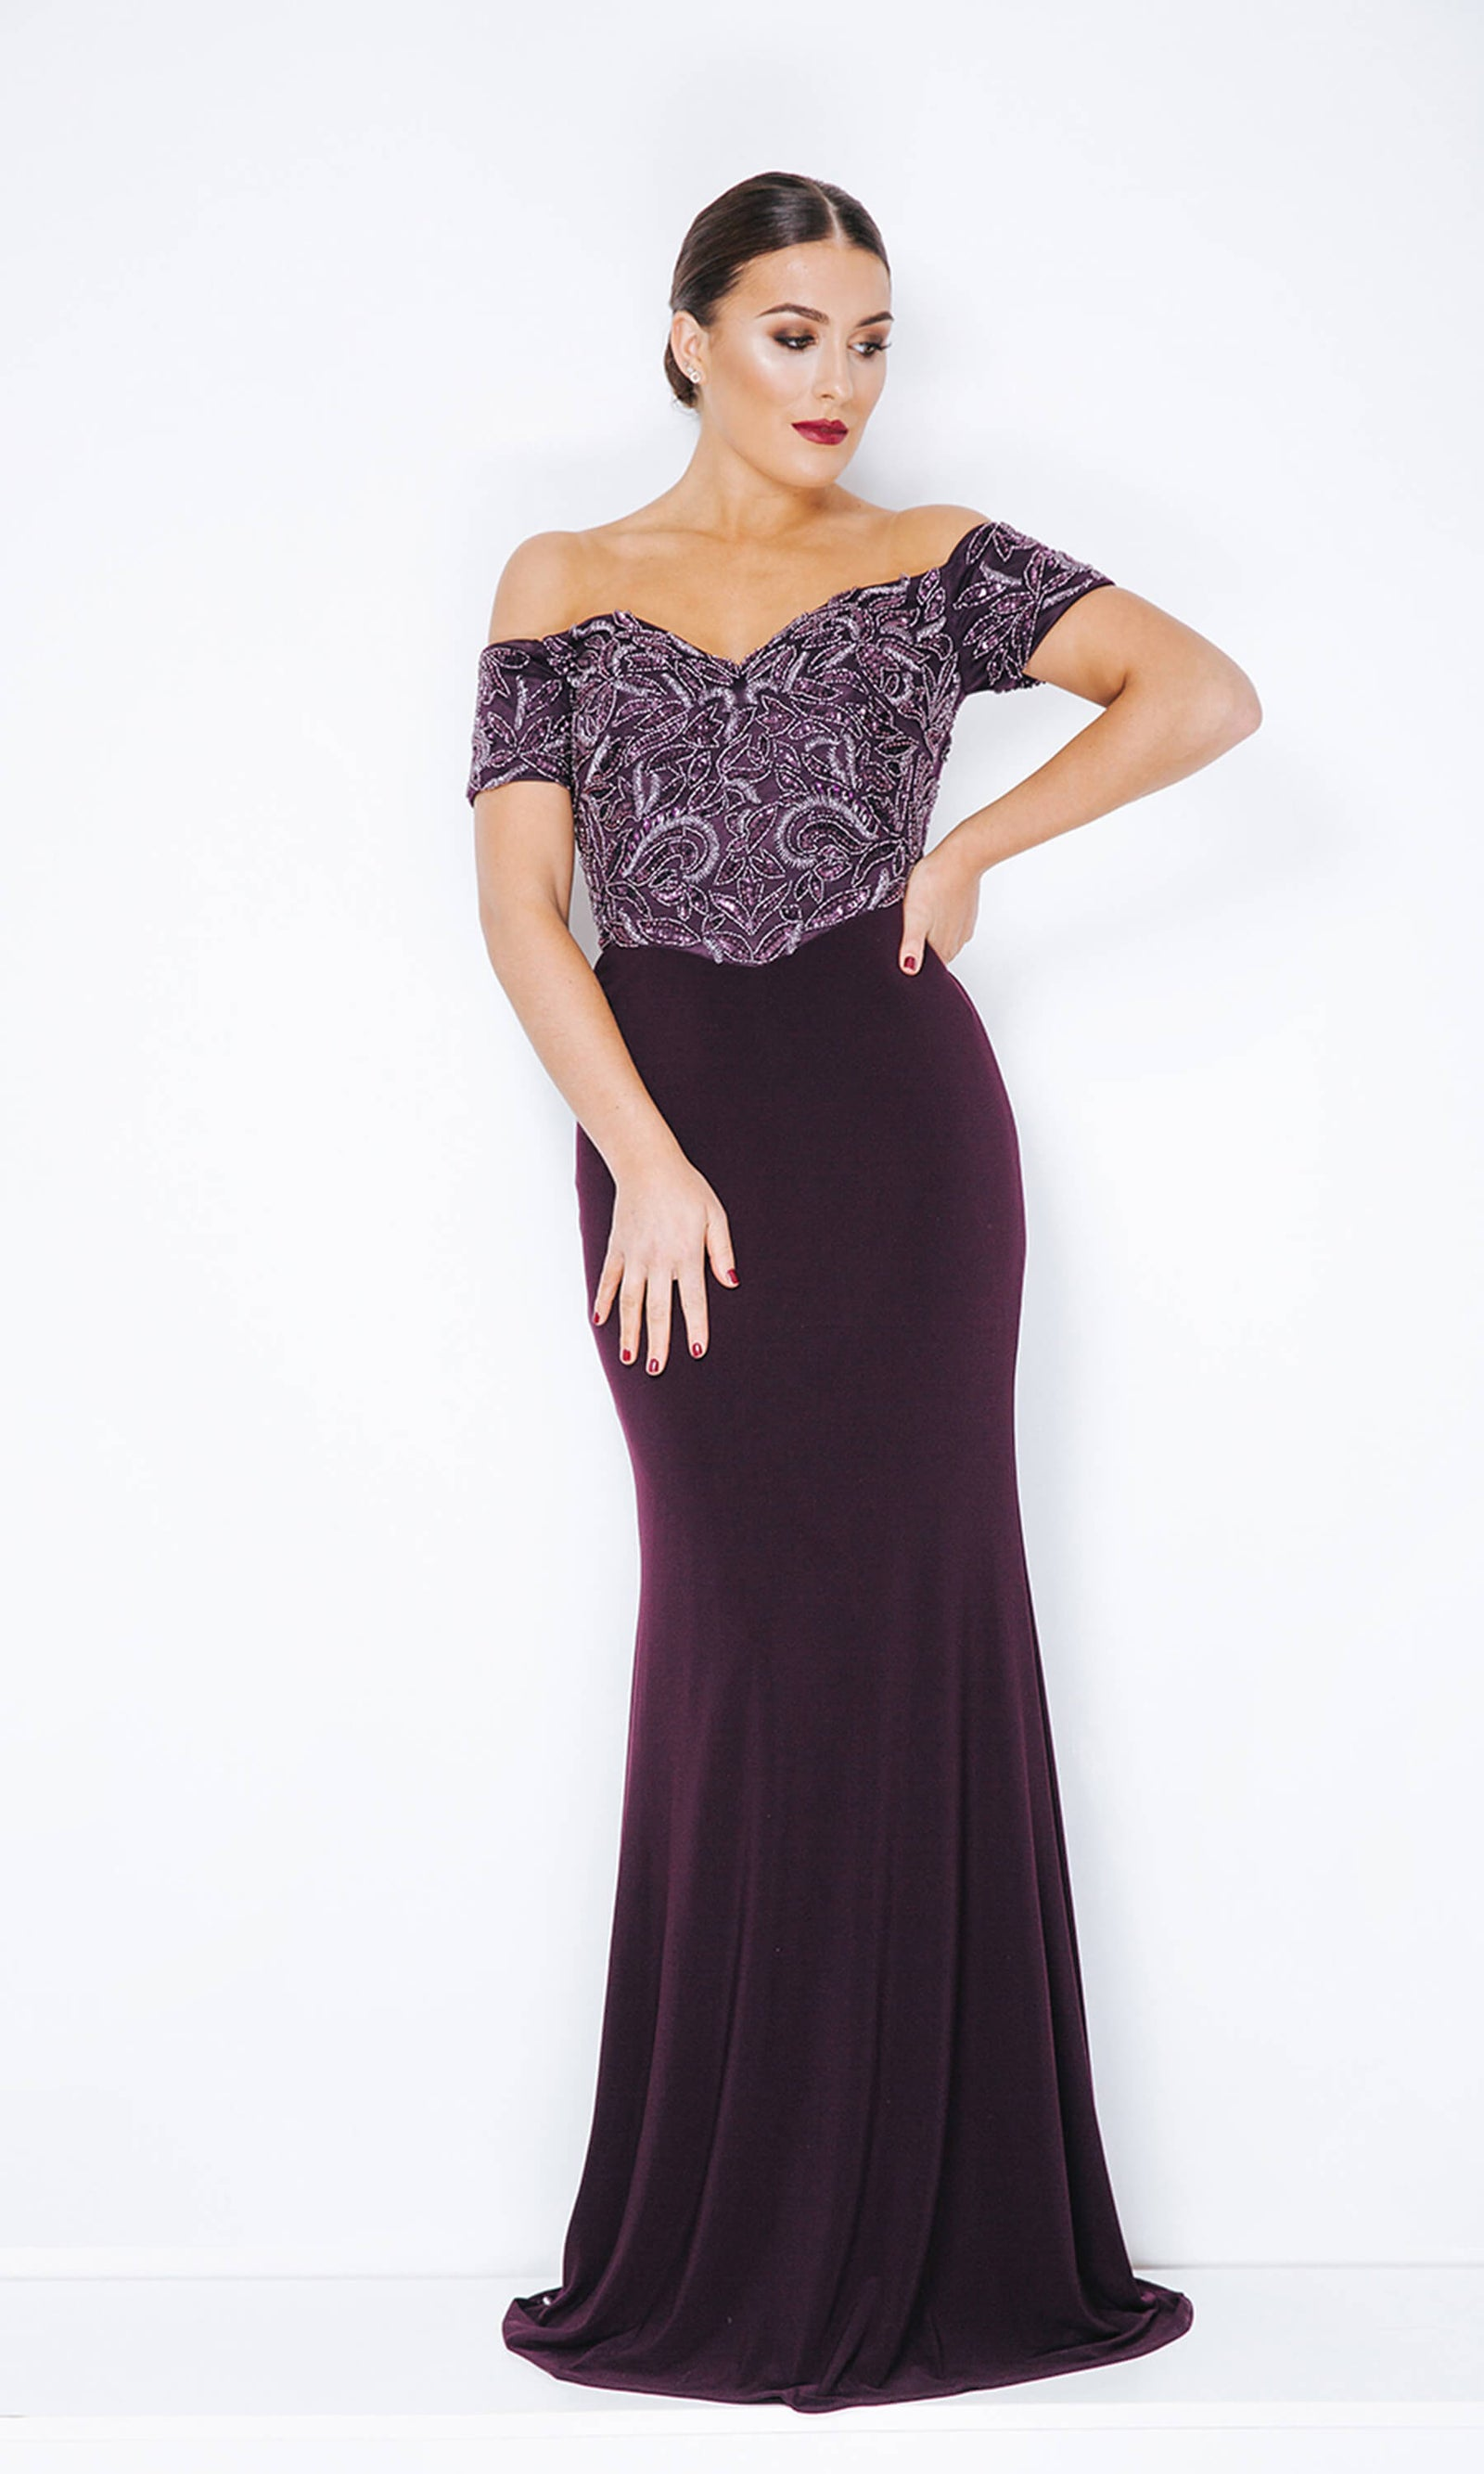 1013228 Nightshade Dynasty Bardot Neckline Evening Dress